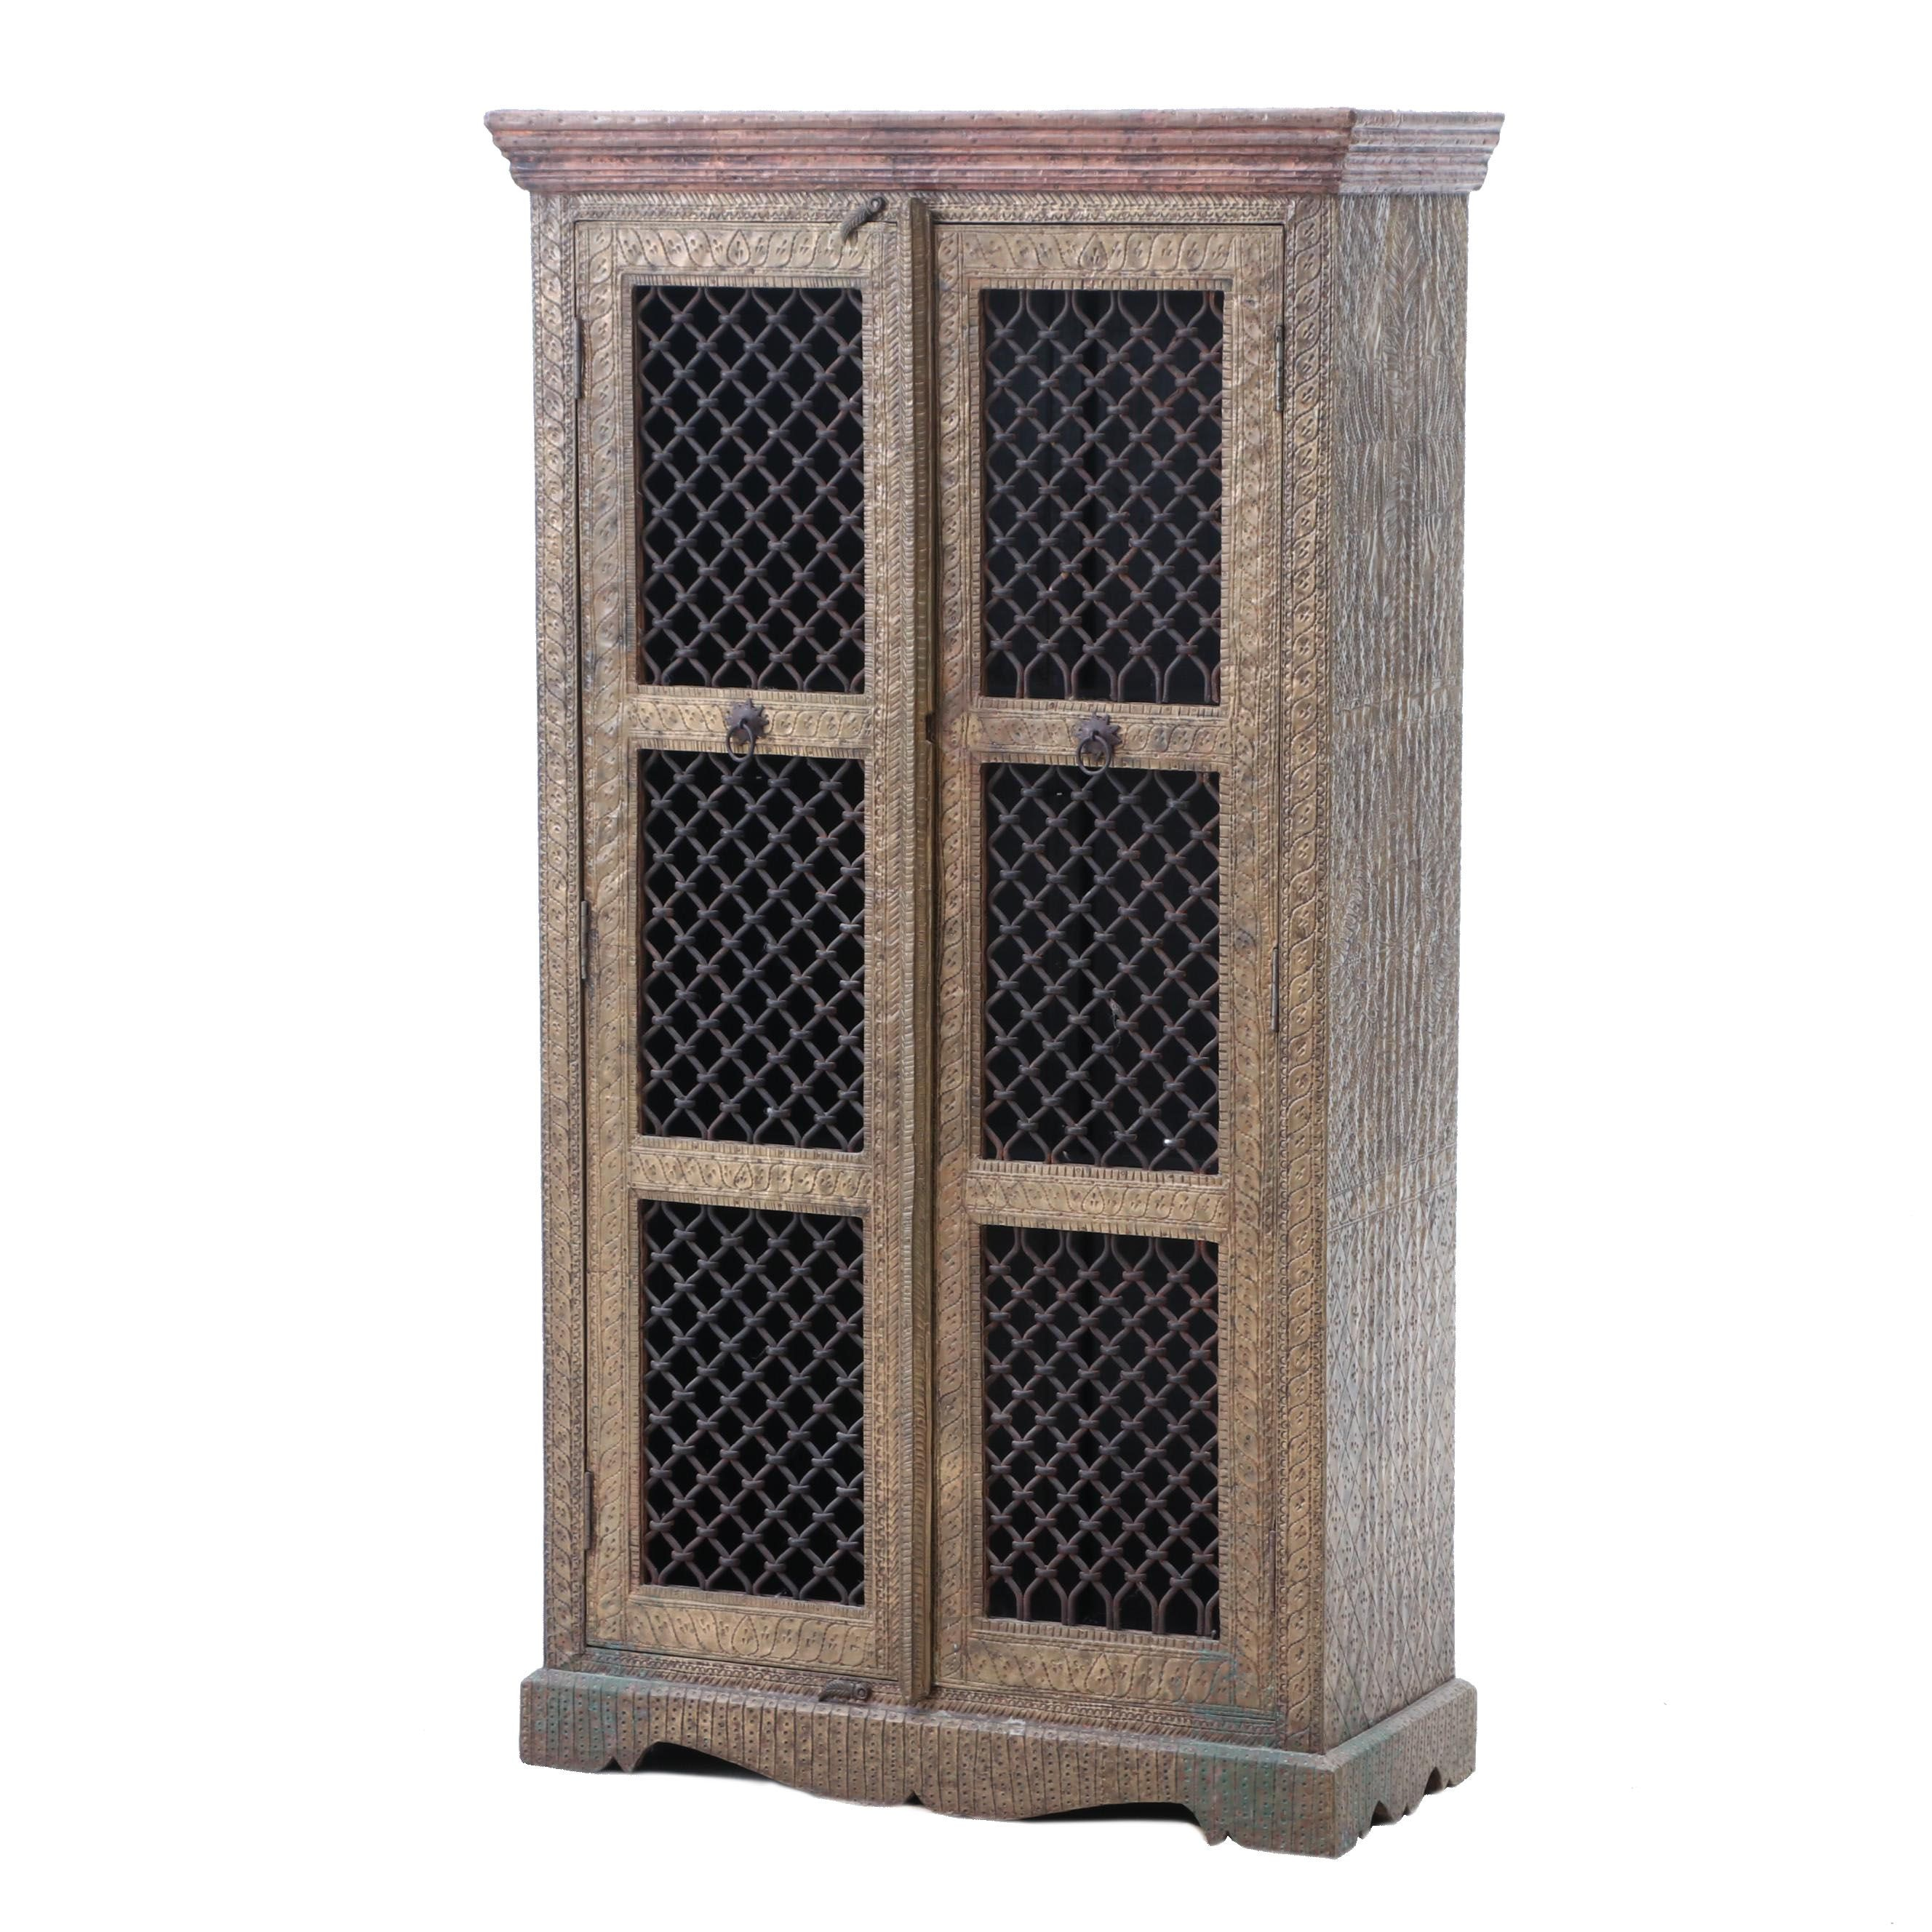 East India Brass Clad Embossed Cabinet